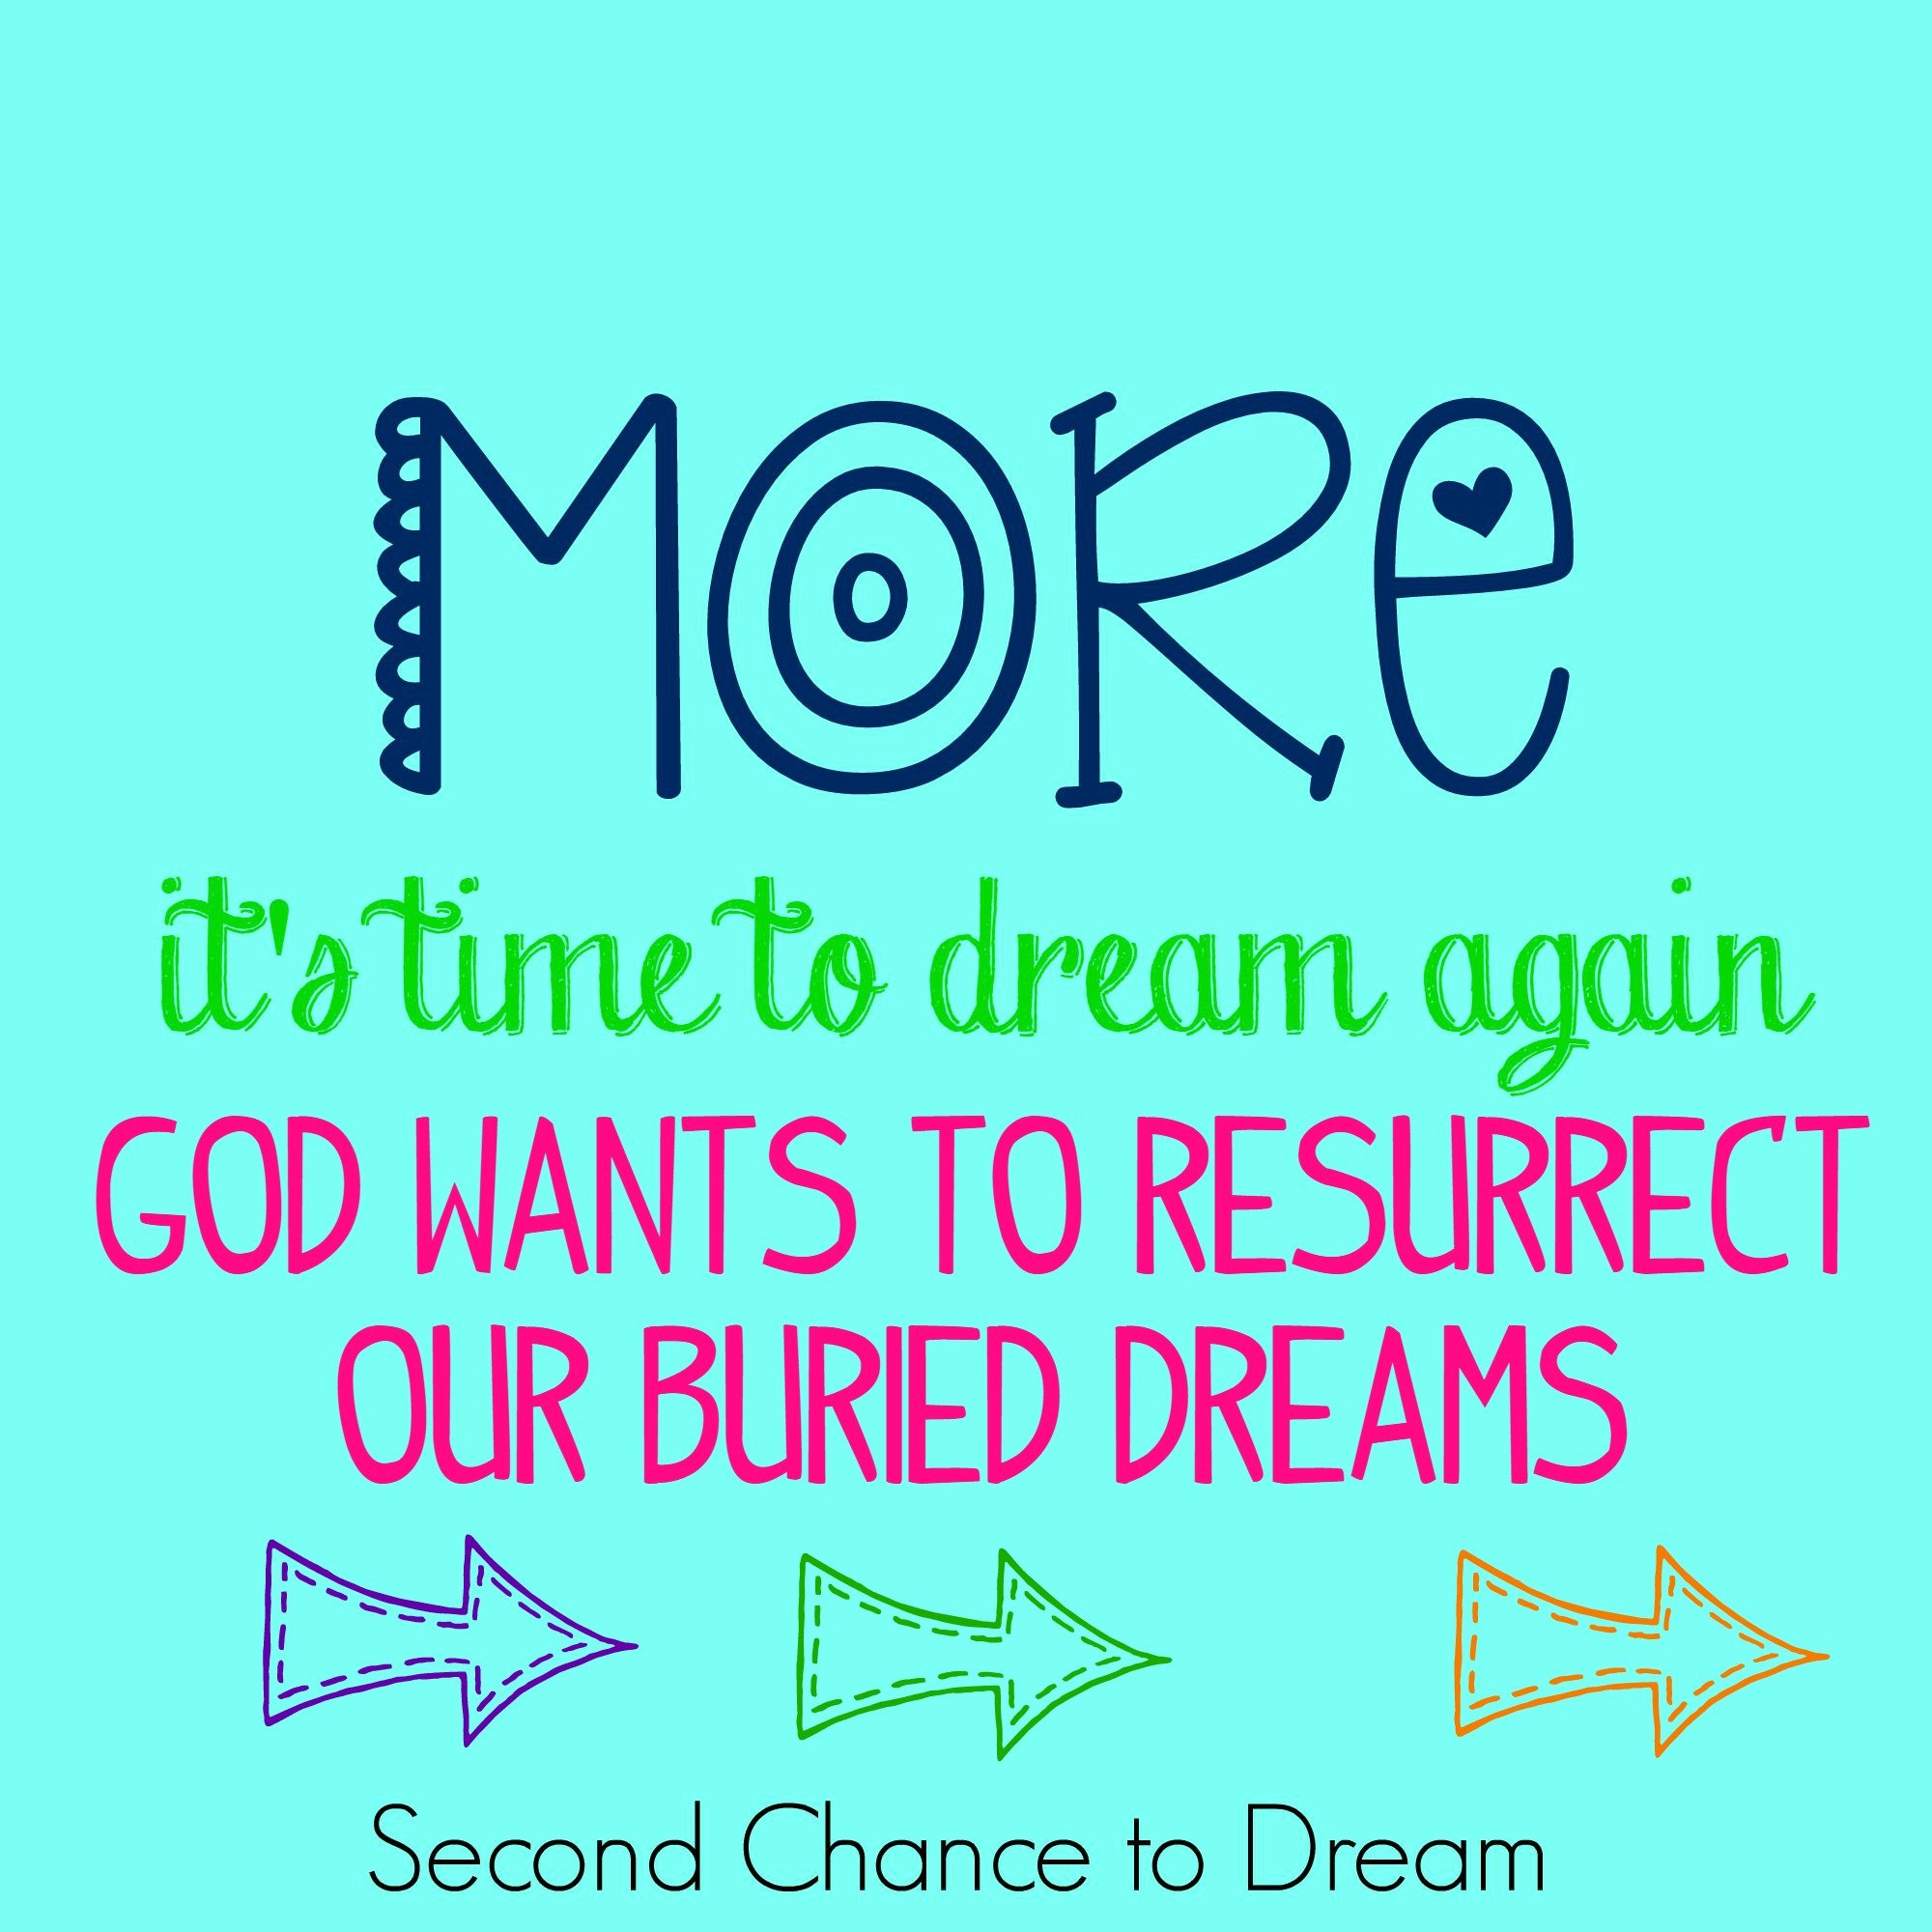 Second Chance to Dream: God wants to resurrect our buried dreams #dreams #lifelessons